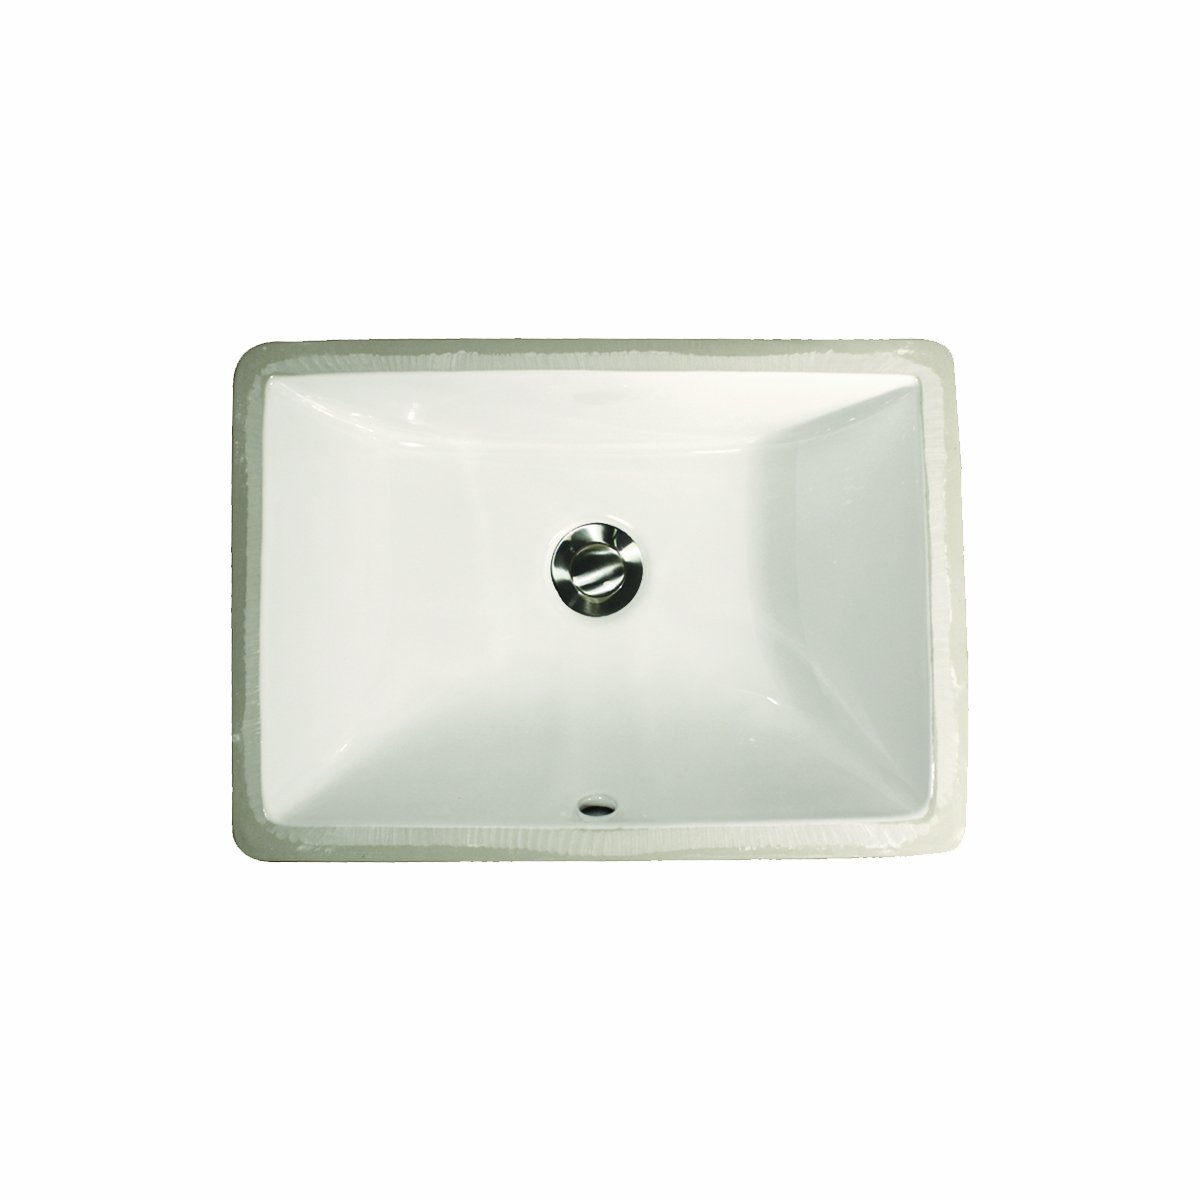 16 Inch Vanity Sink Part - 46: Nantucket Sinks UM-16x11-W 16-Inch By 11-Inch Rectangle Ceramic Undermount  Vanity, White - - Amazon.com